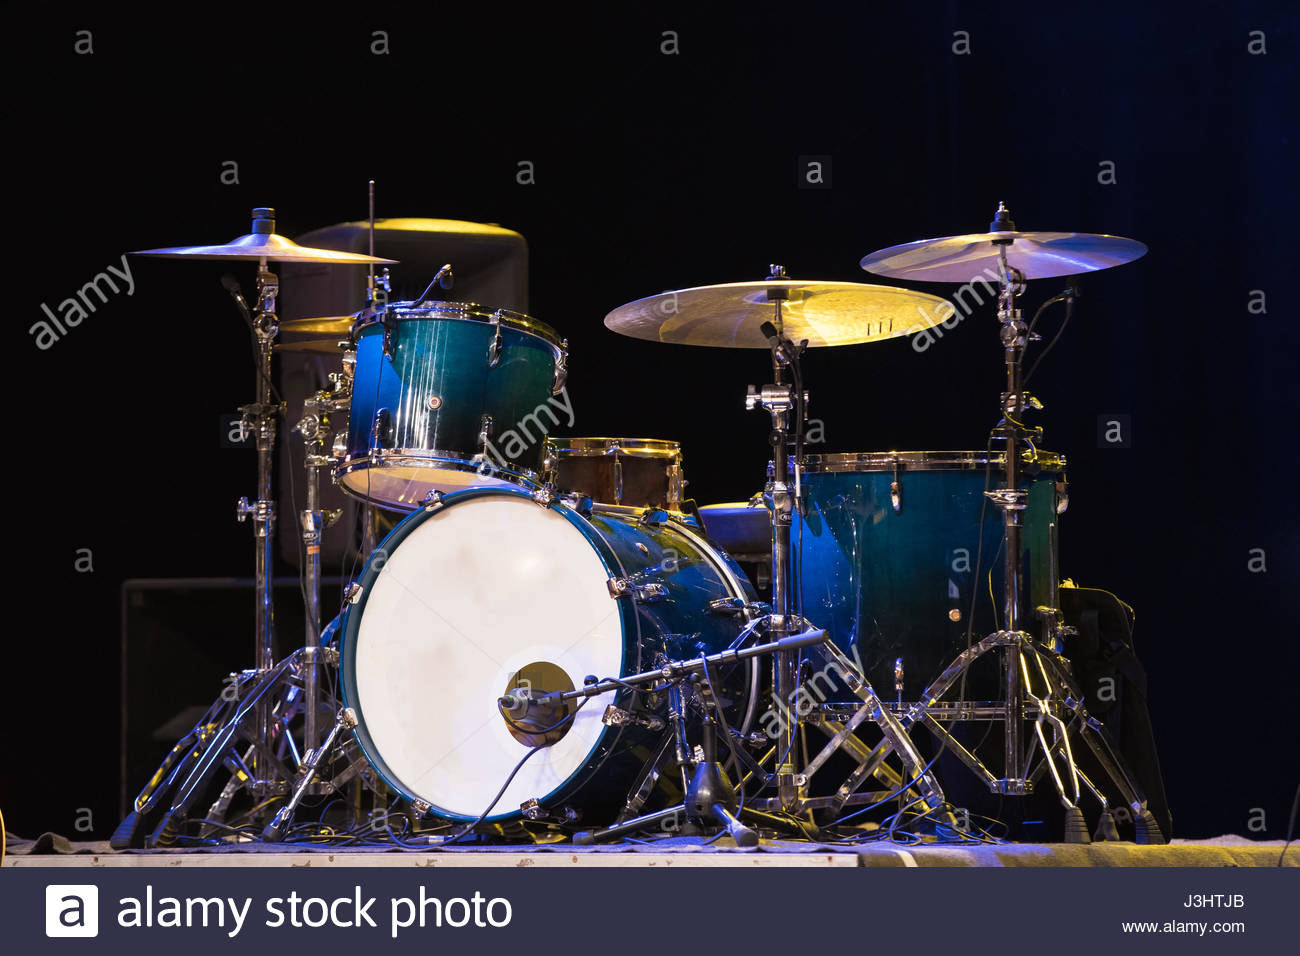 Drum Set On A Stage At Dark Background Musical Drums Kit On Stage 1300x956